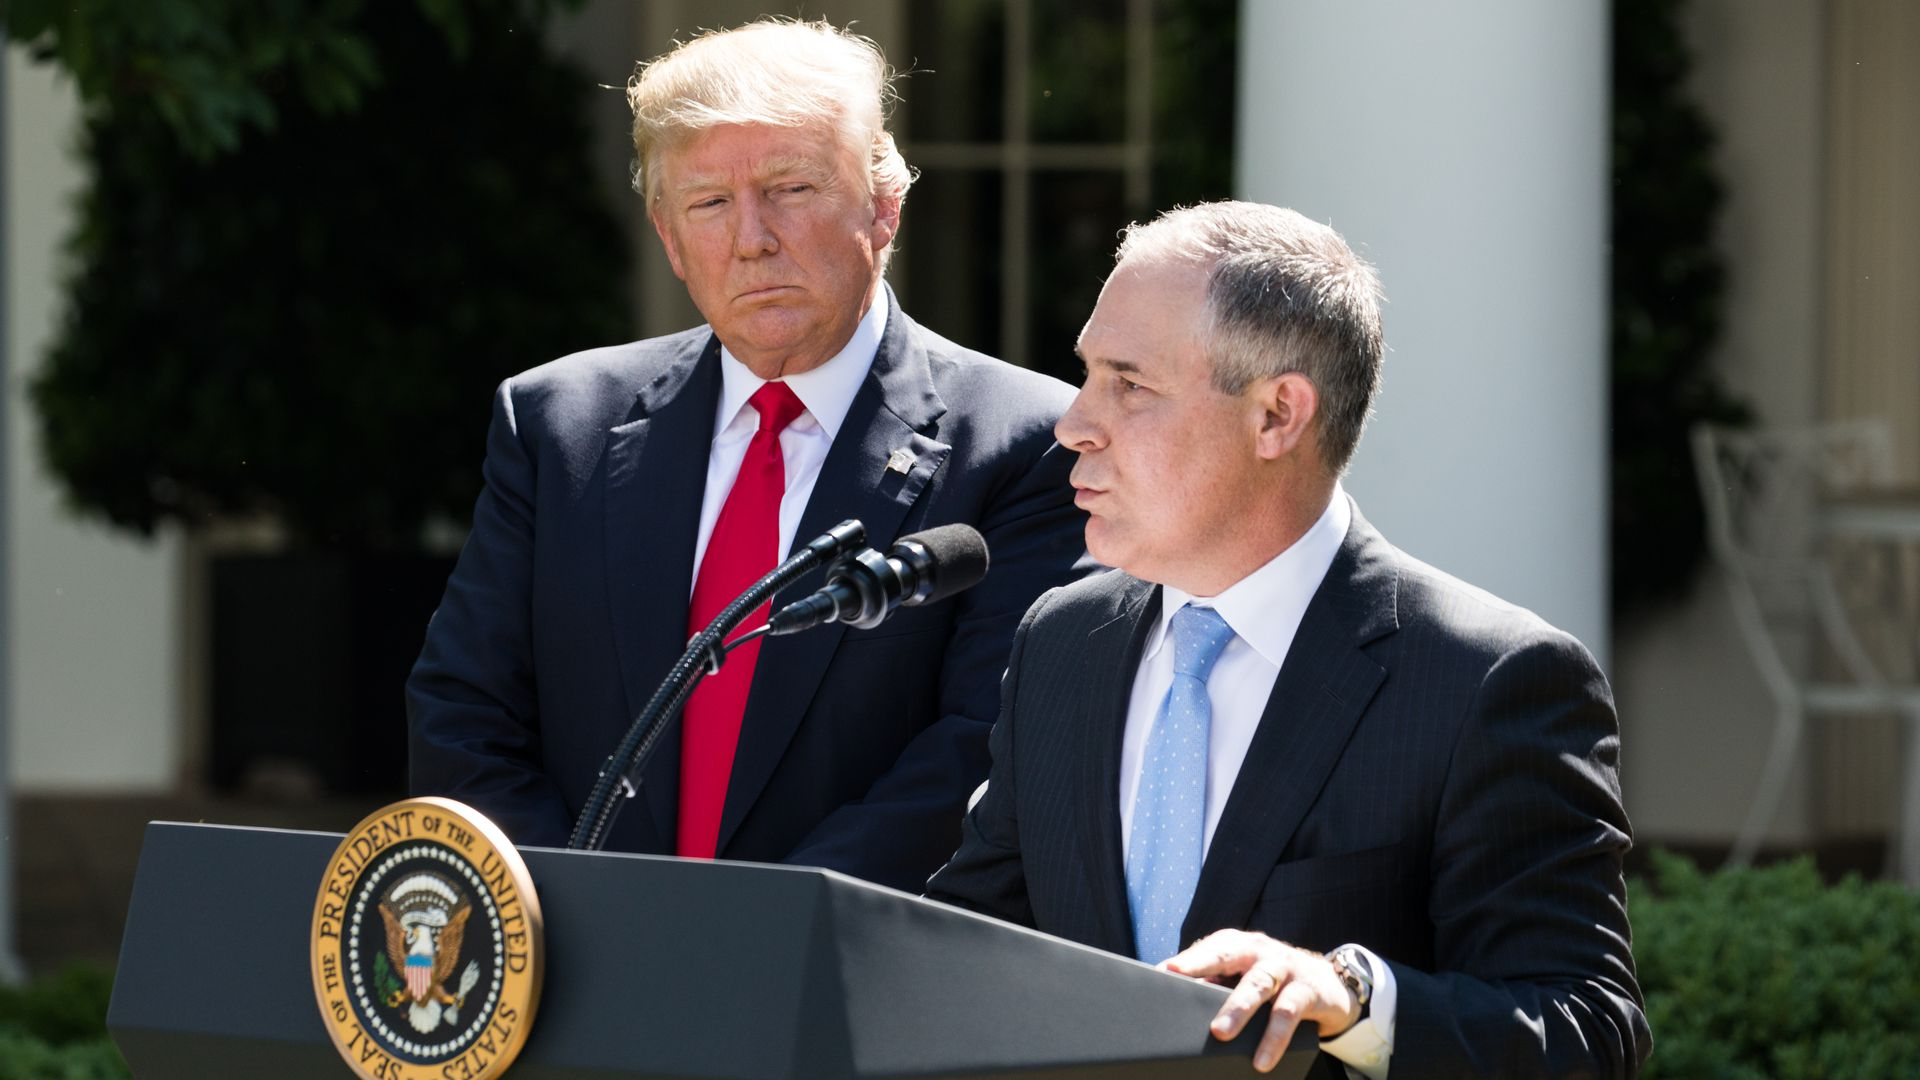 Trump looks at Pruitt with some side eye as Pruitt speaks at the White House